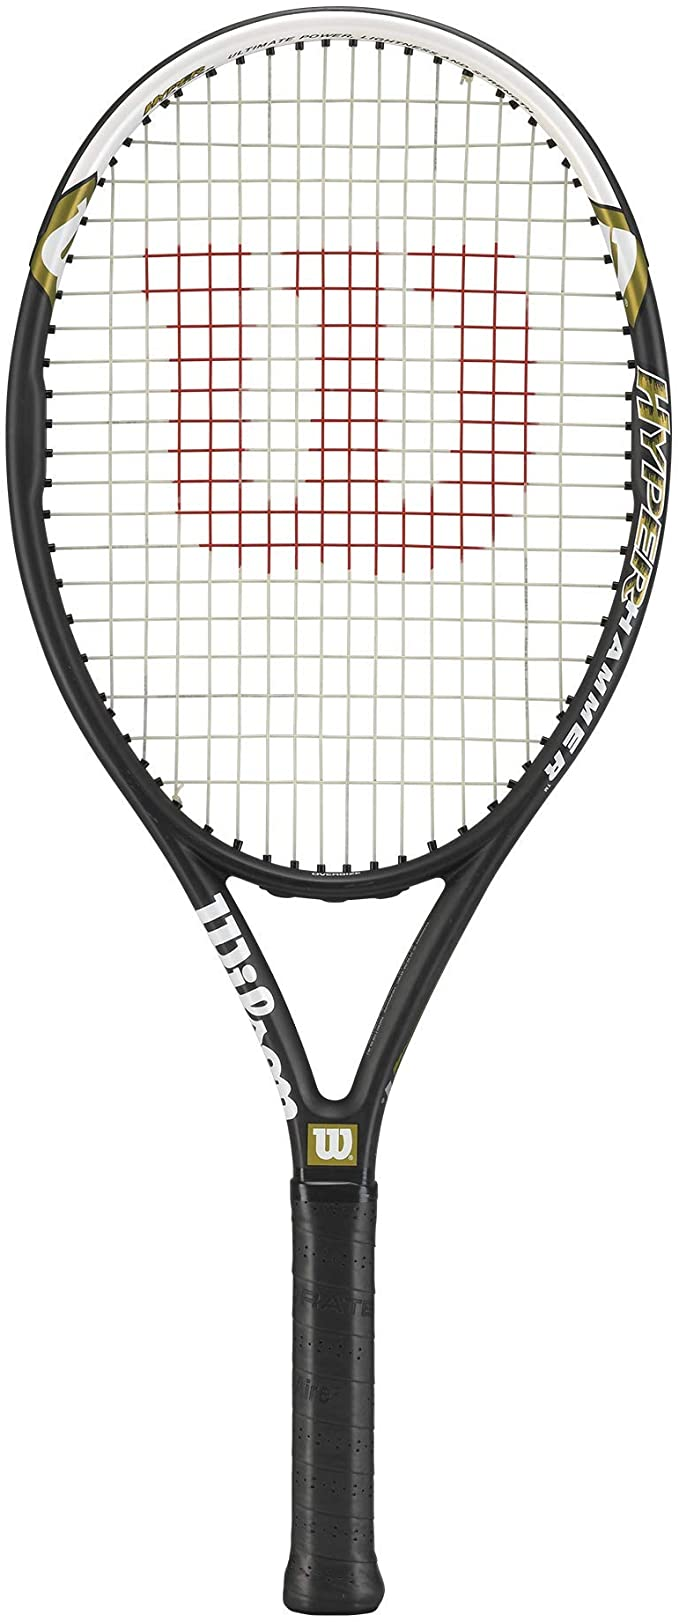 "Amazon.com : Wilson Adult Recreational Tennis Racket - Size 4 1/4"", 4 3/8"",  4 1/2"" : Sports & Outdoors"